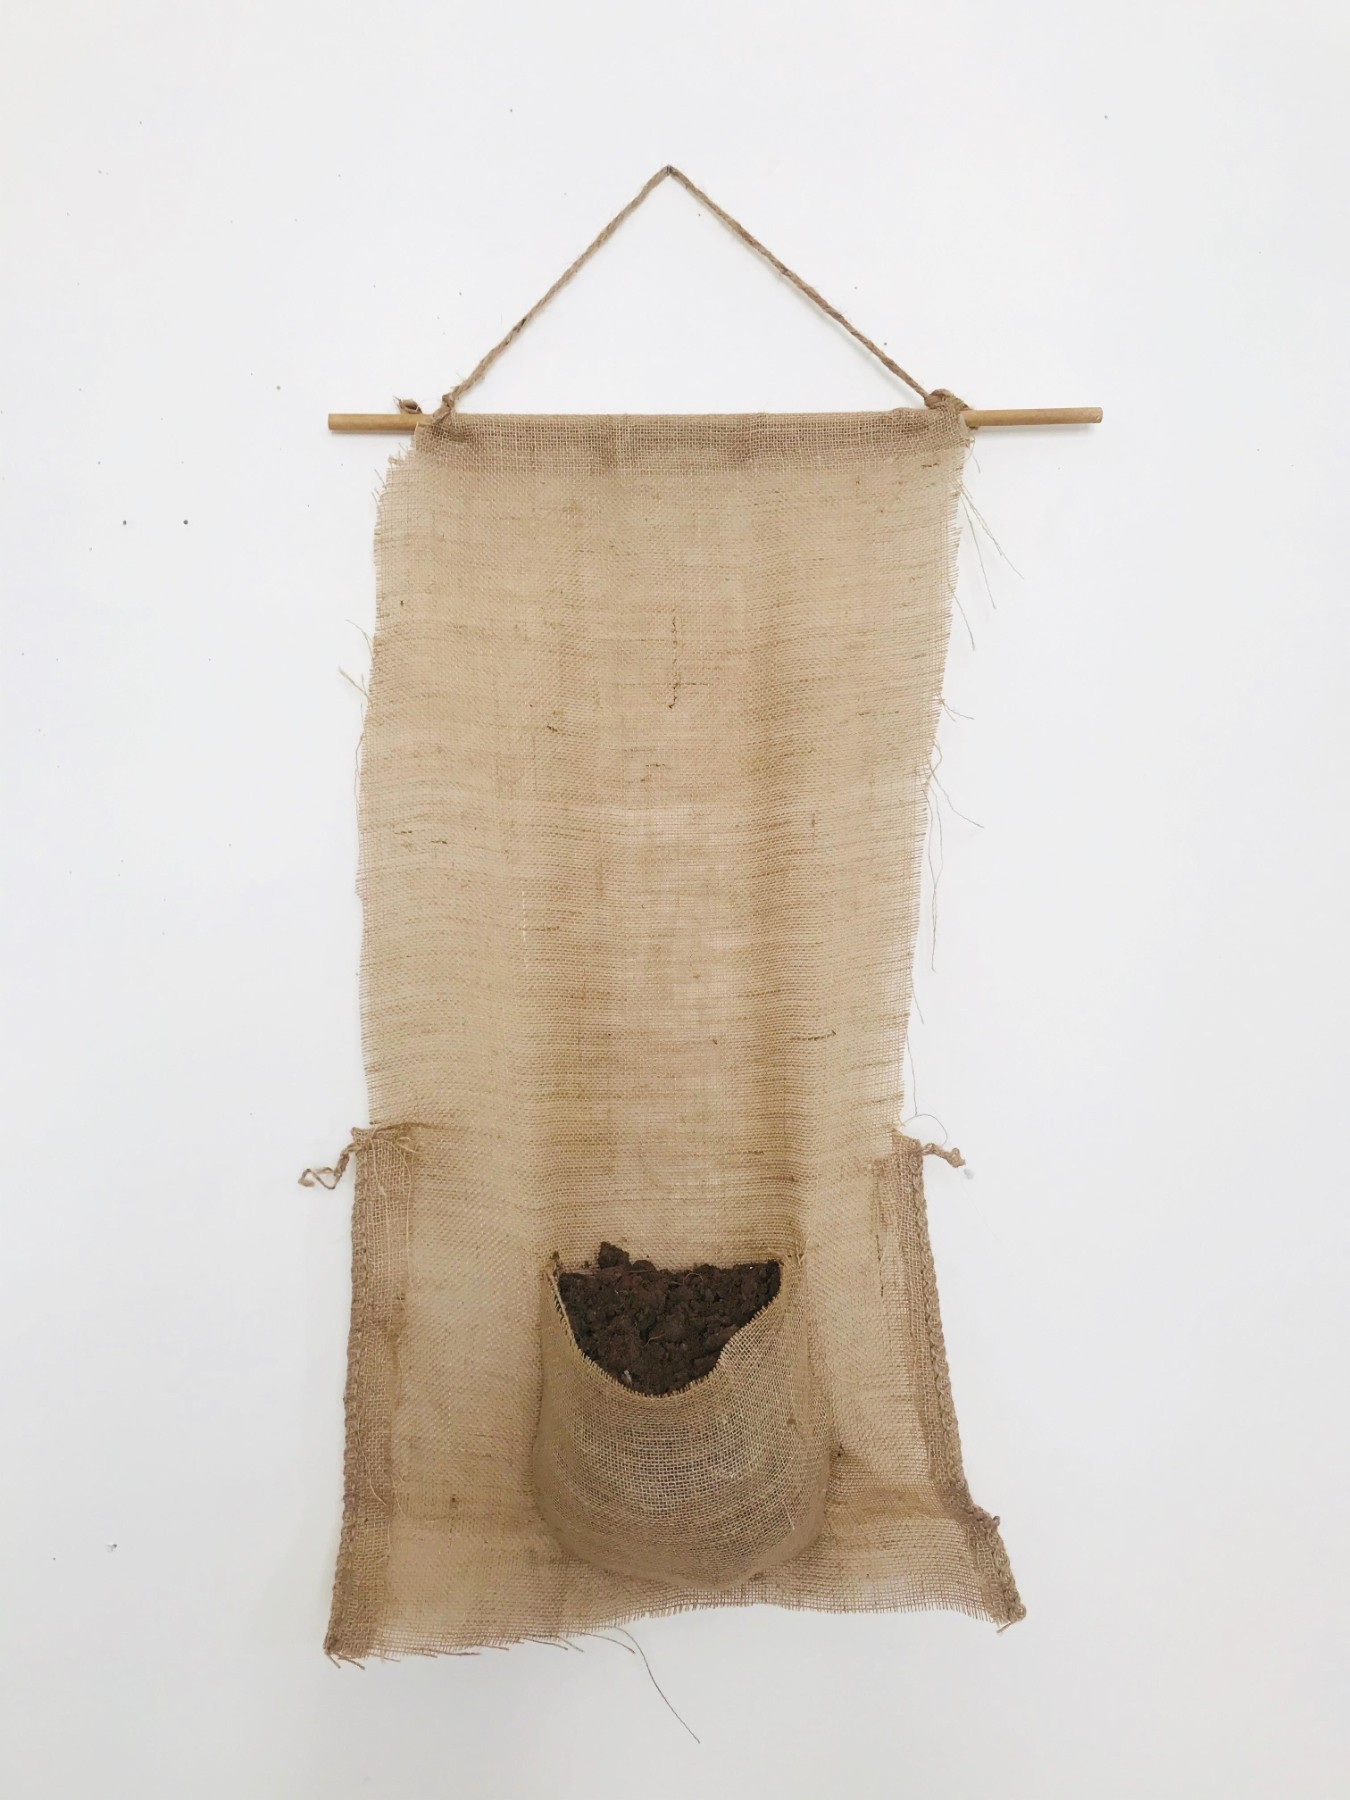 Burlap bag hanging on wall with pocket full of dirt dug up from ground